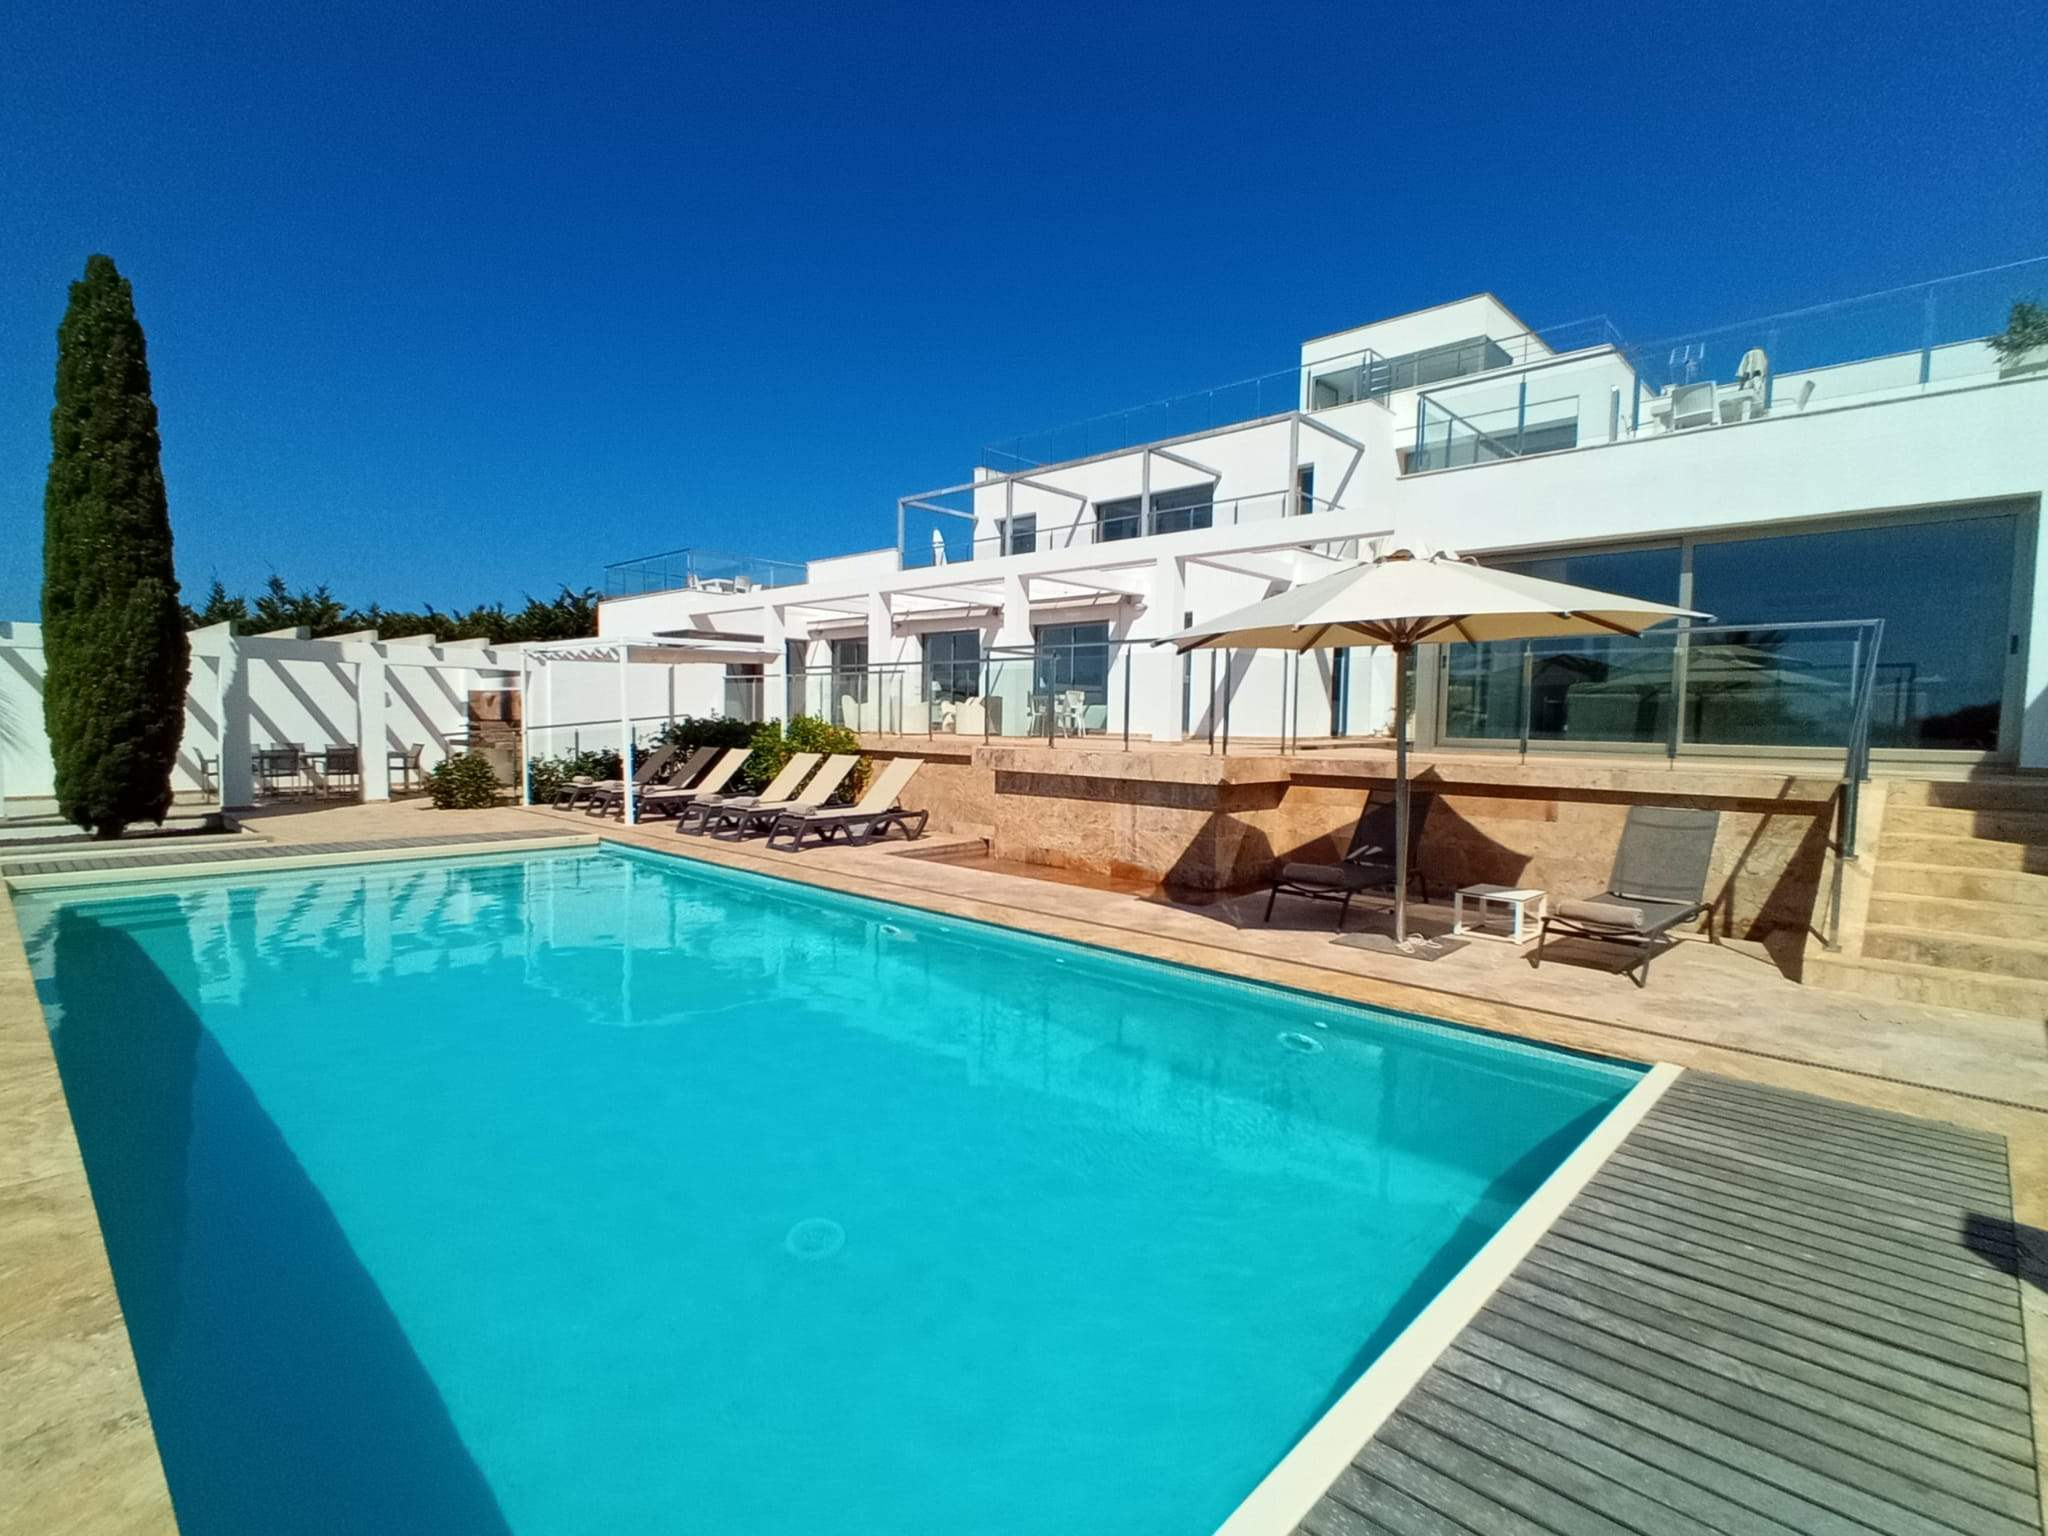 Casa Pitiusa, 4 Bedroom rate, 4 bedroom villa in Mahon, San Luis & South East, Menorca Photo #1